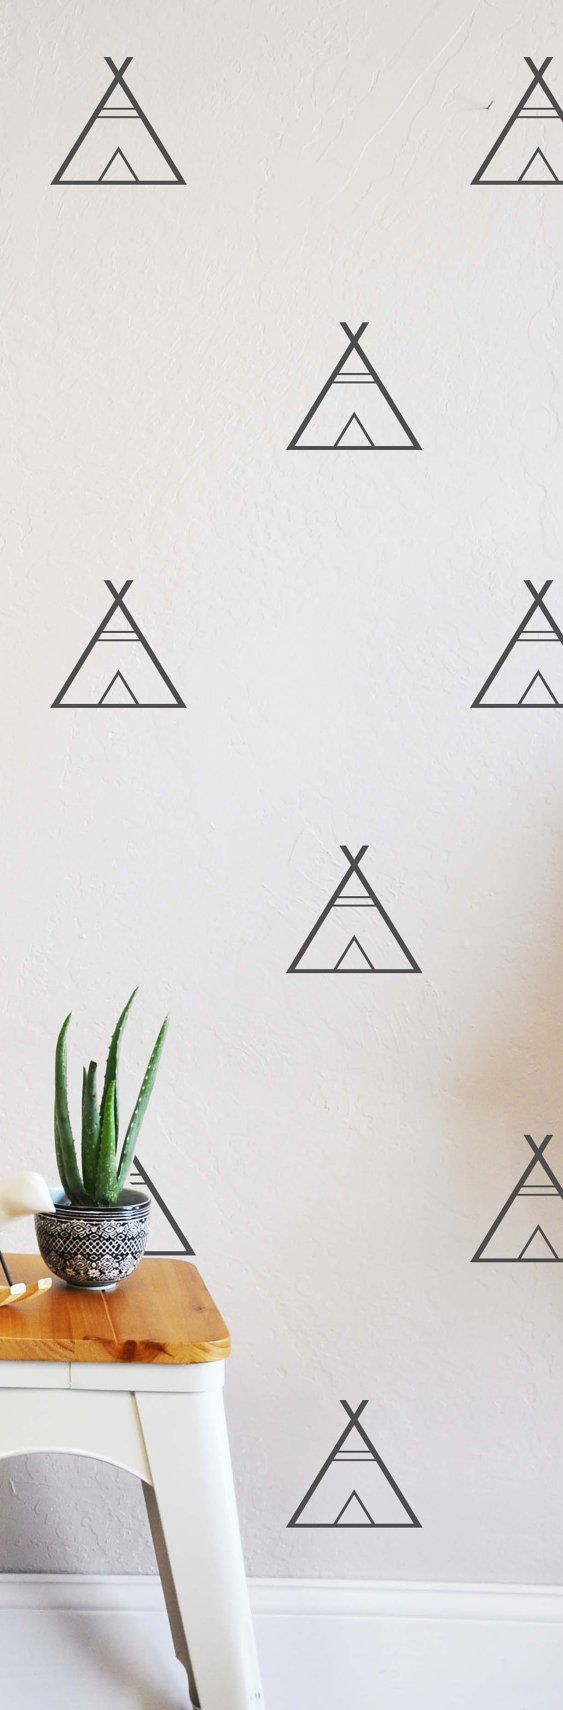 "32qty - 4""h x 4""w tee pee wall decal  The interior is cut out so that the wall shows through as the background.  It is sent with a transfer tape application.  Fully removable and reusable wall decals that will brighten and add  character to any room.   **PLEASE NOTE THAT METALLIC VINYL IS NOT REUSABLE**  -100% polyester fabric self adhesive vinyl  -HP Latex Inks  ARTIST THE LOVELY WALL"